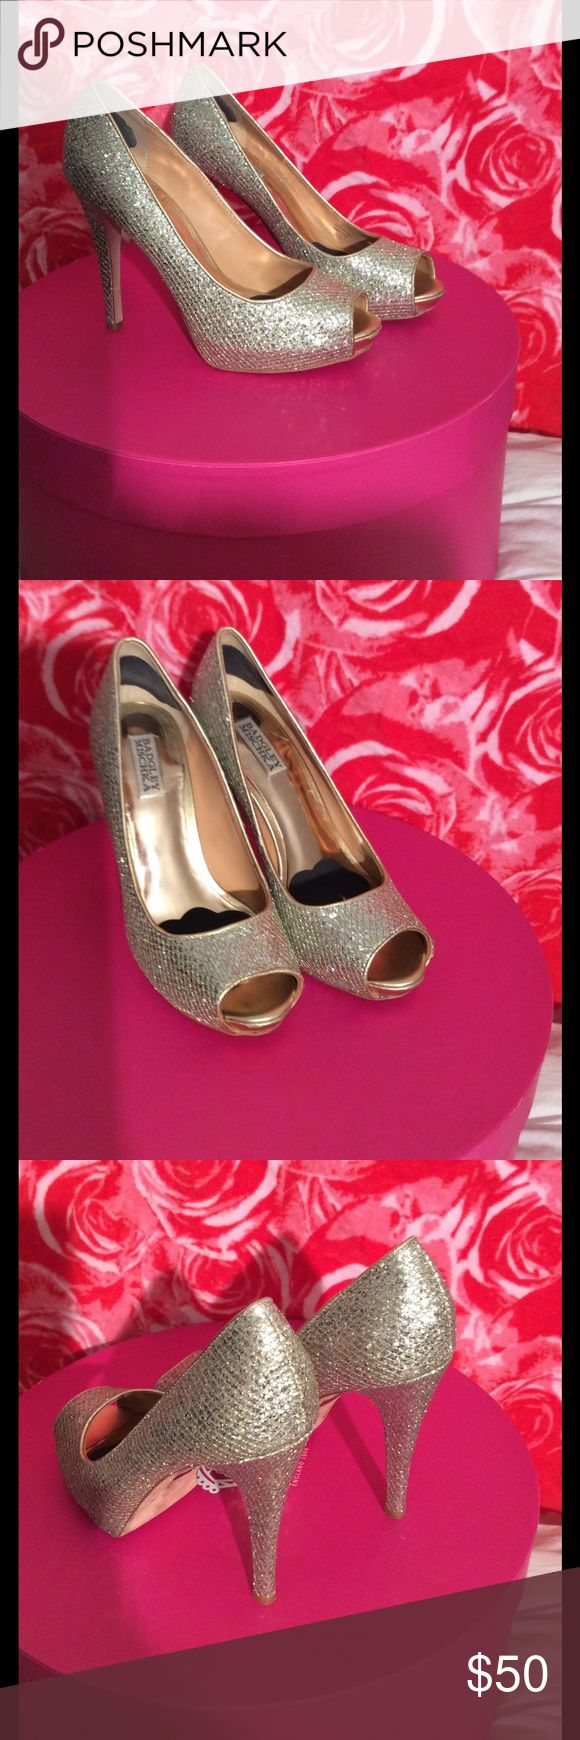 Gold stilettos Gorgeous, glittery, sparkly, formal or party heels! Badgley Mischka Shoes Heels